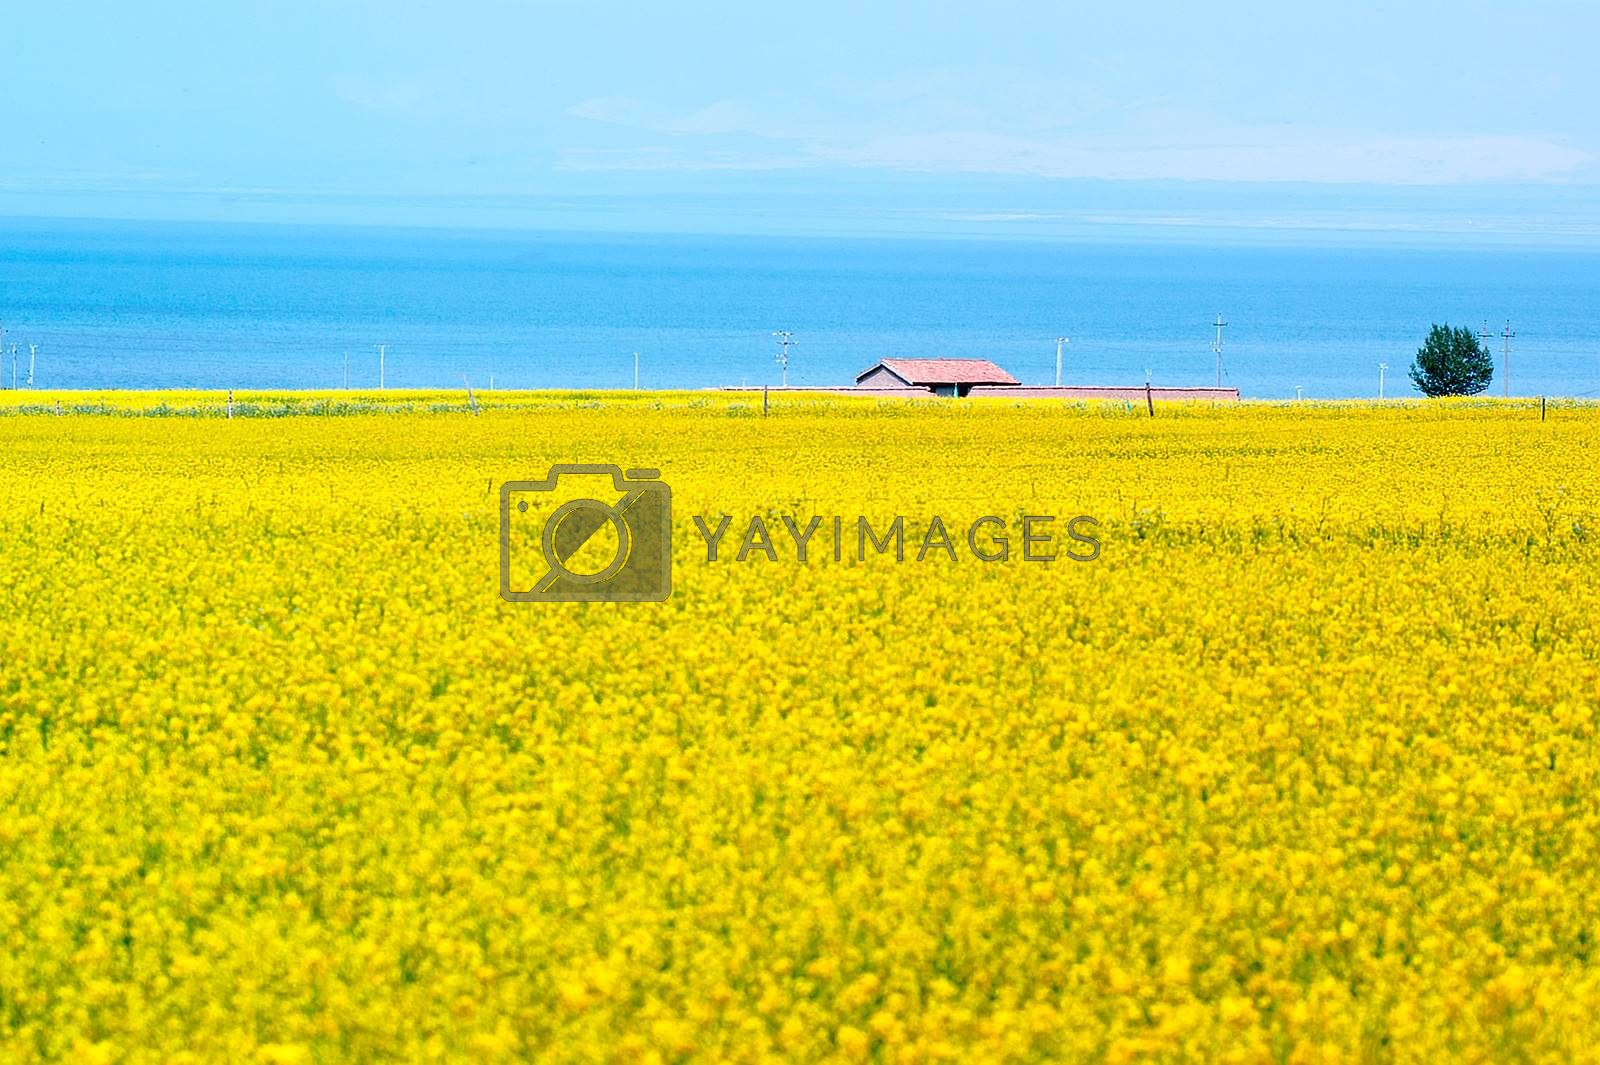 Qinghai Lake views - canola flower fields by xfdly5